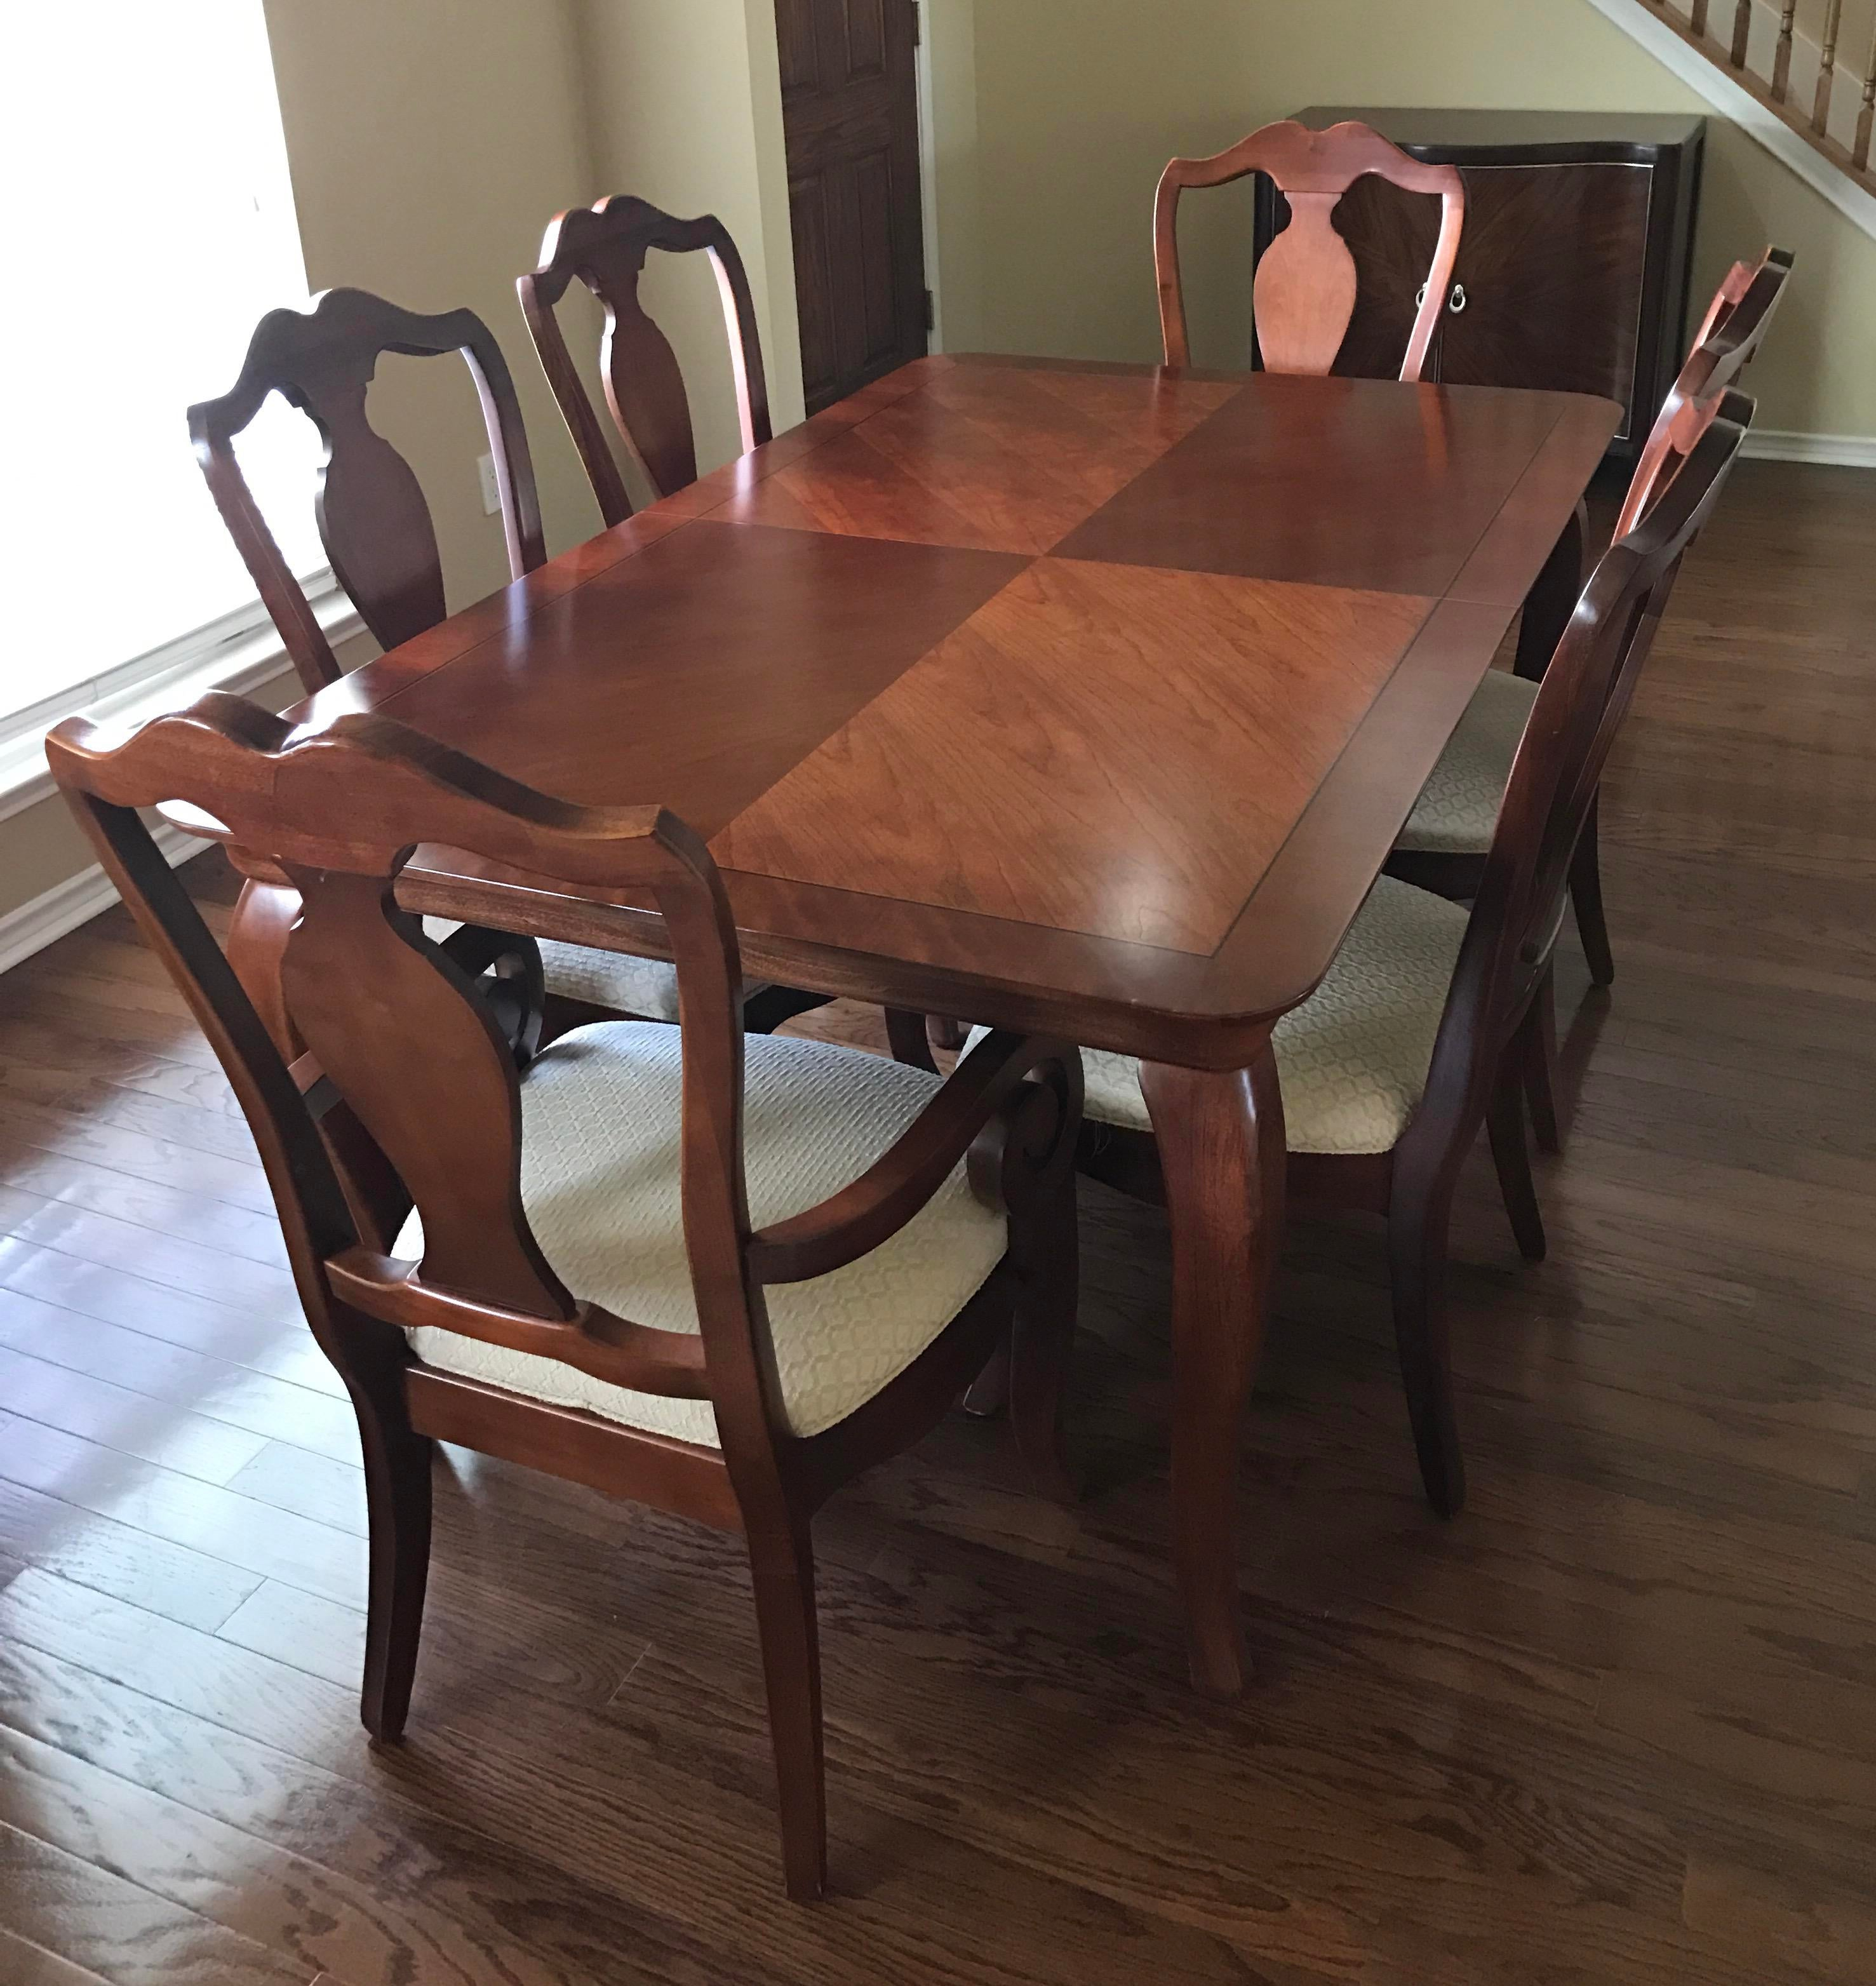 Thomasville Dining Table U0026 Chairs W/ Leaves   Image 2 Of 10